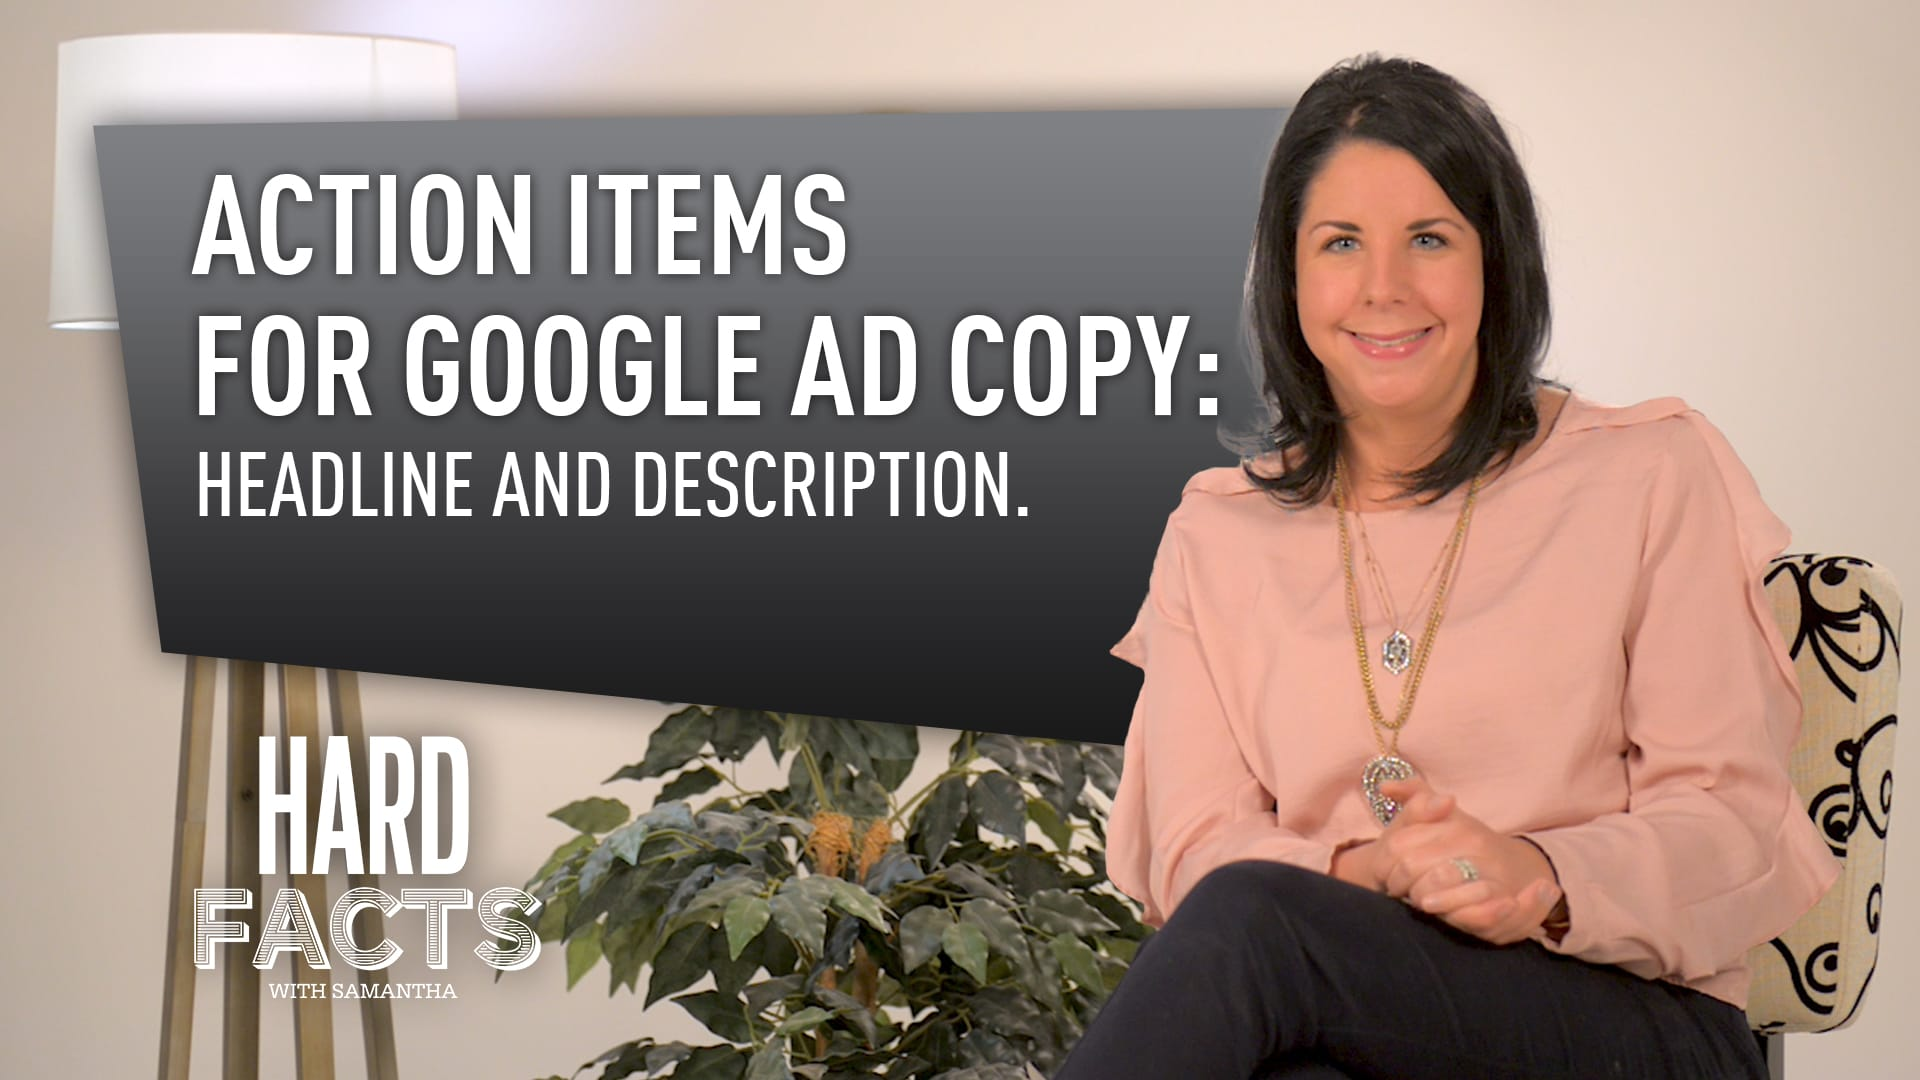 Action Items for Google Ad Copy: Headline and Description